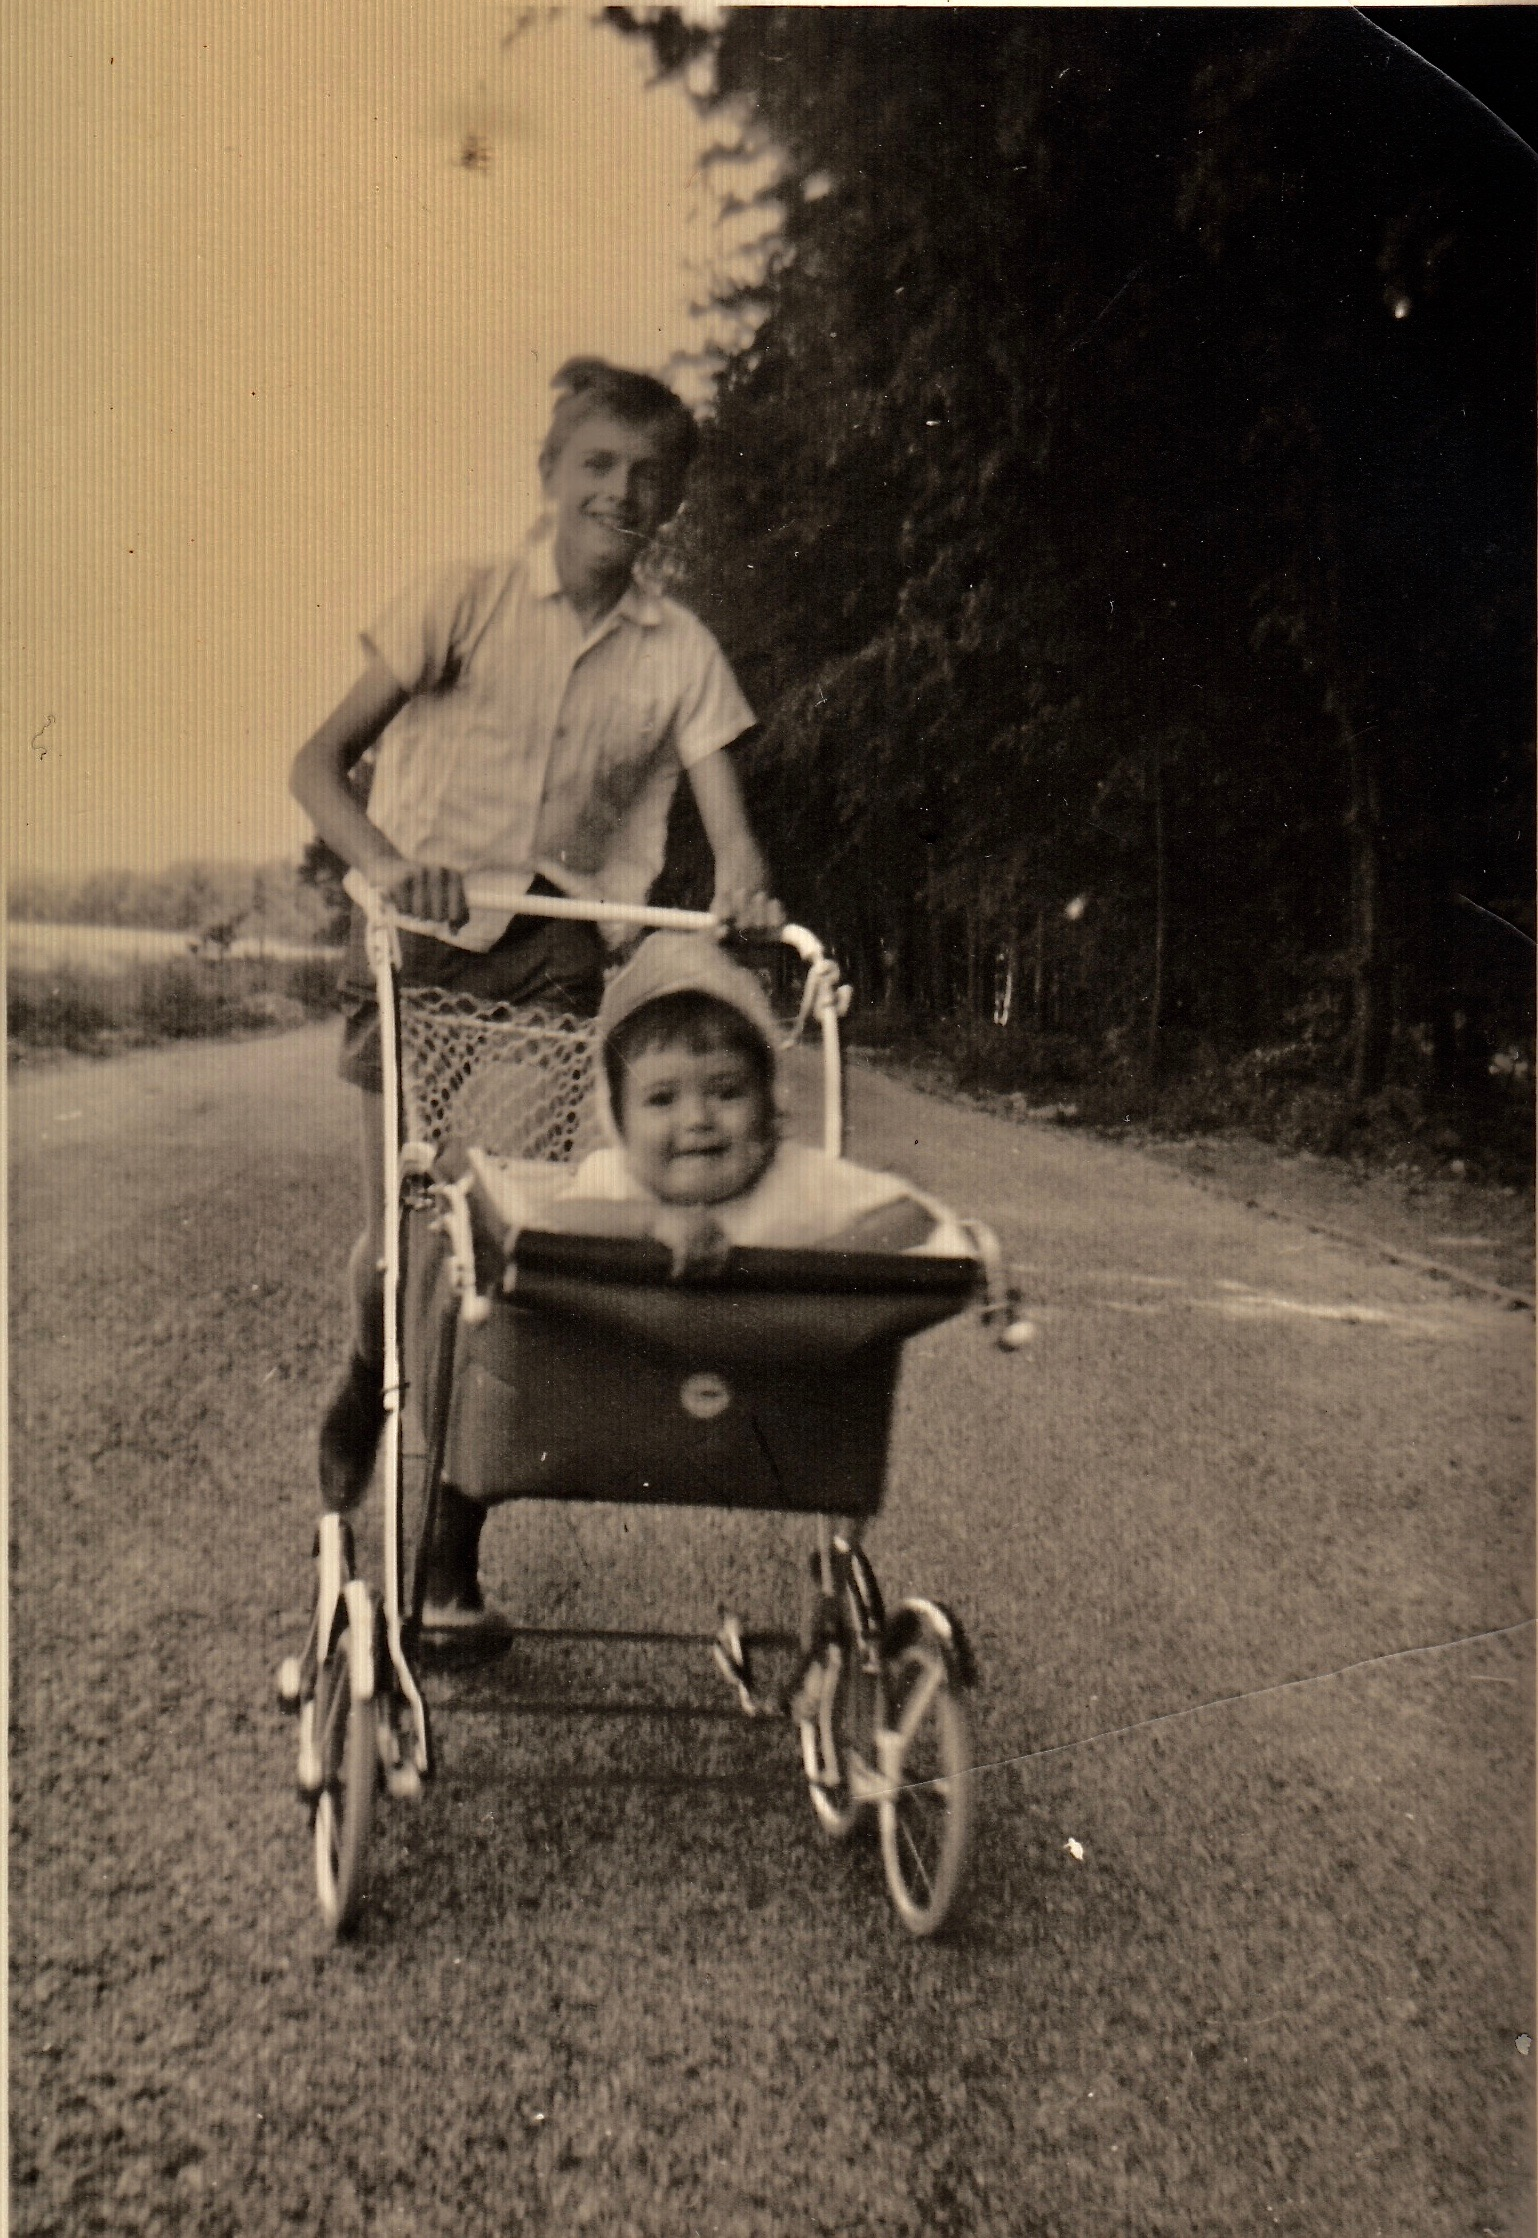 1964, with one of my uncles